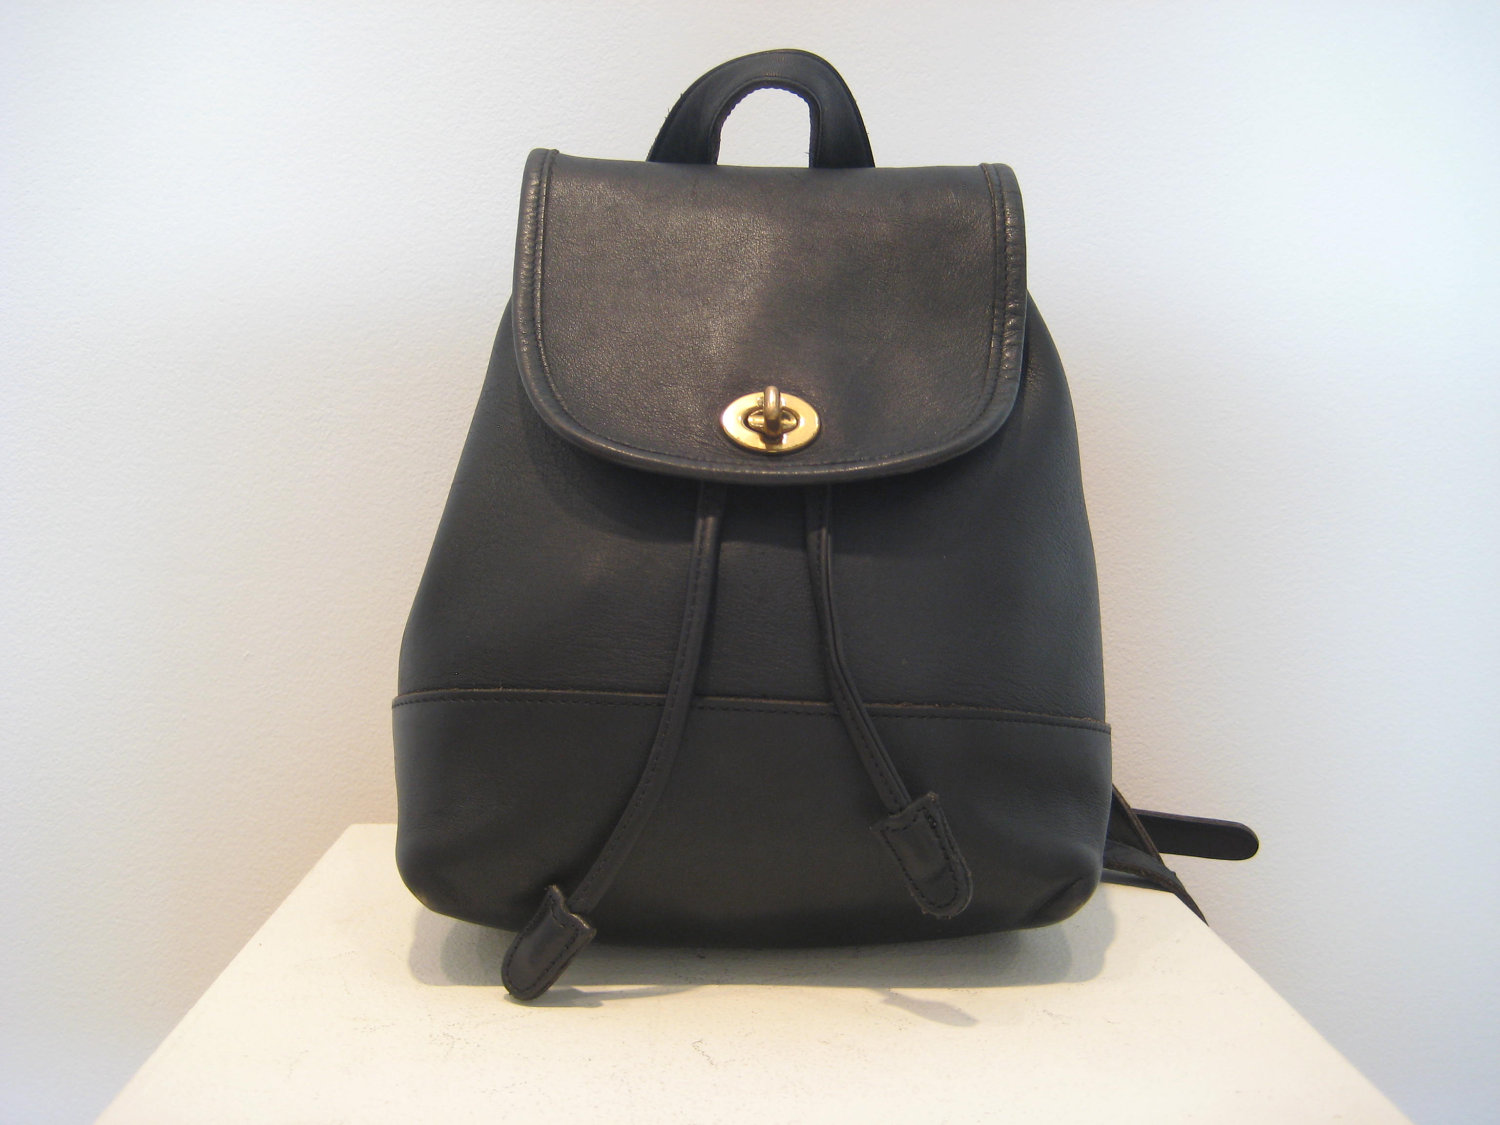 Leather Purse Backpacks kbMb9aIr